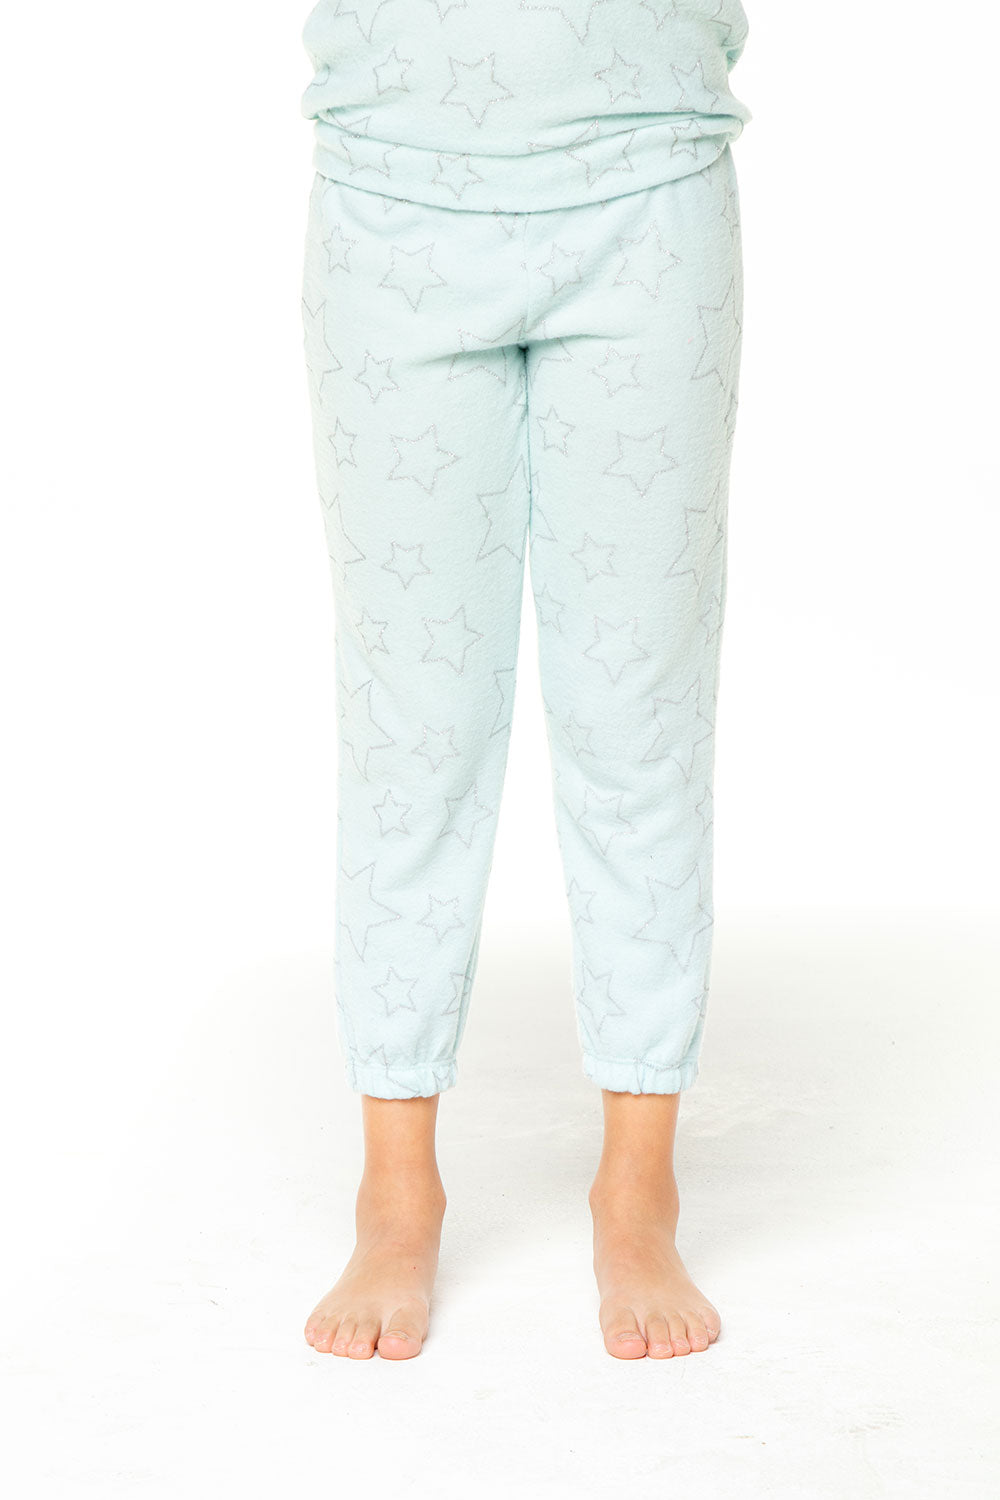 Silver Stars Pant GIRLS chaserbrand4.myshopify.com